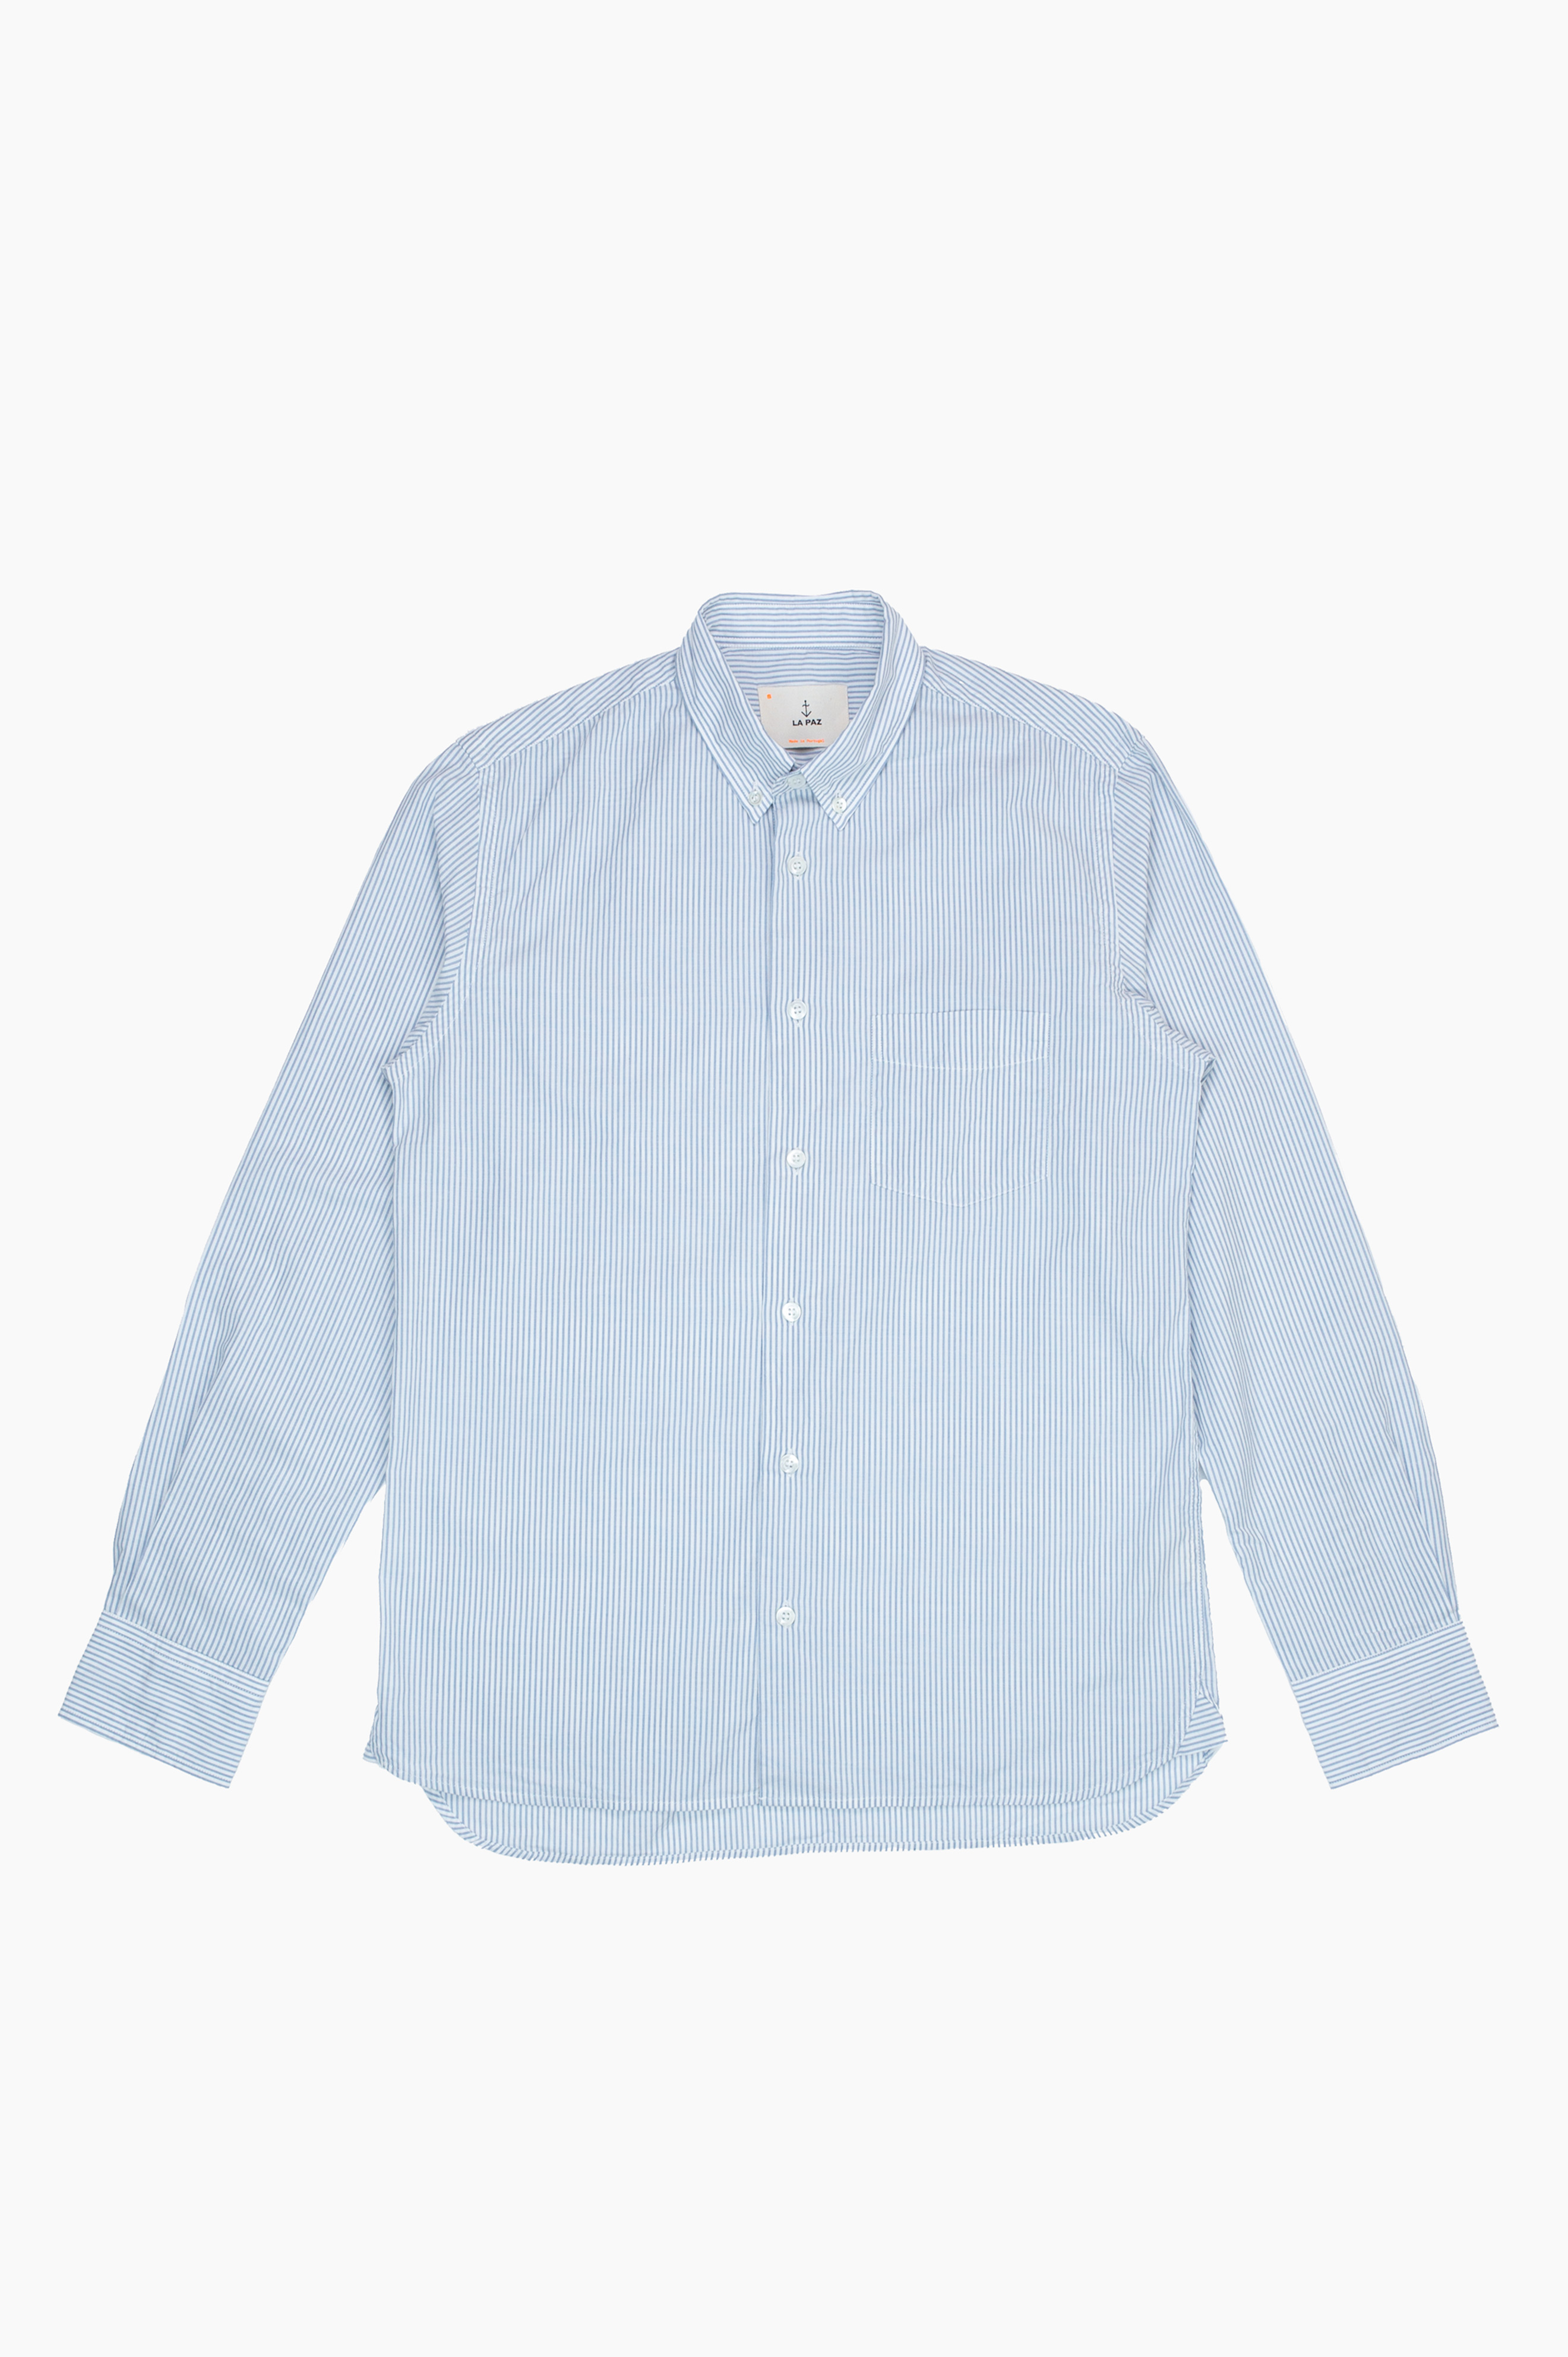 Branco Stripes Shirt White/Blue